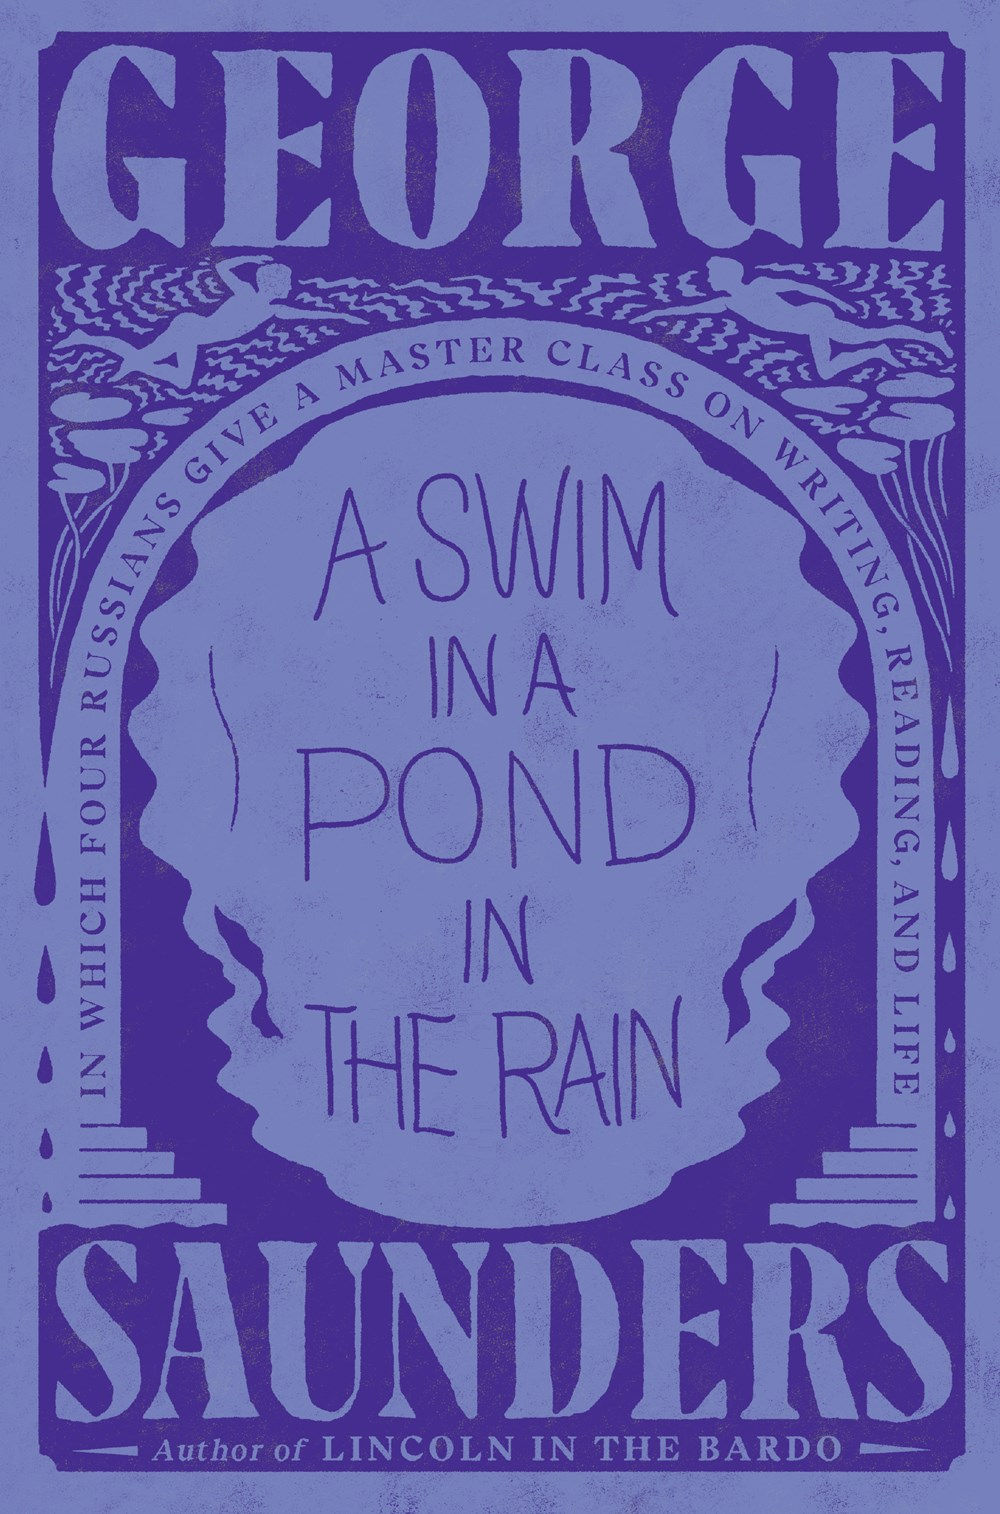 A Swim in the pond in the rain